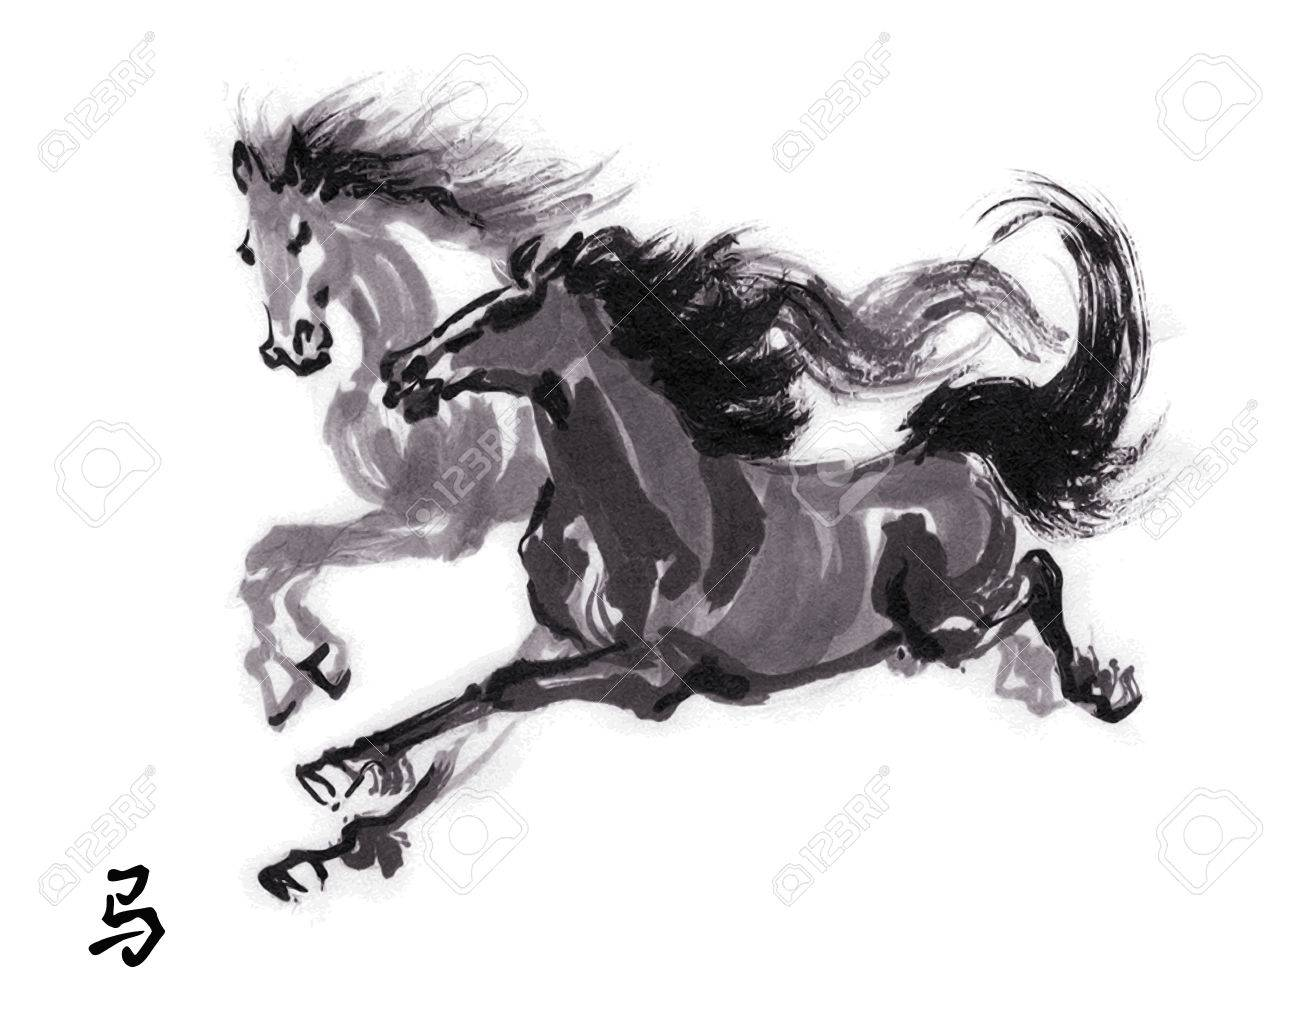 Two Running Horses Oriental Ink Painting With Chinese Hieroglyph Stock Photo Picture And Royalty Free Image Image 69017690